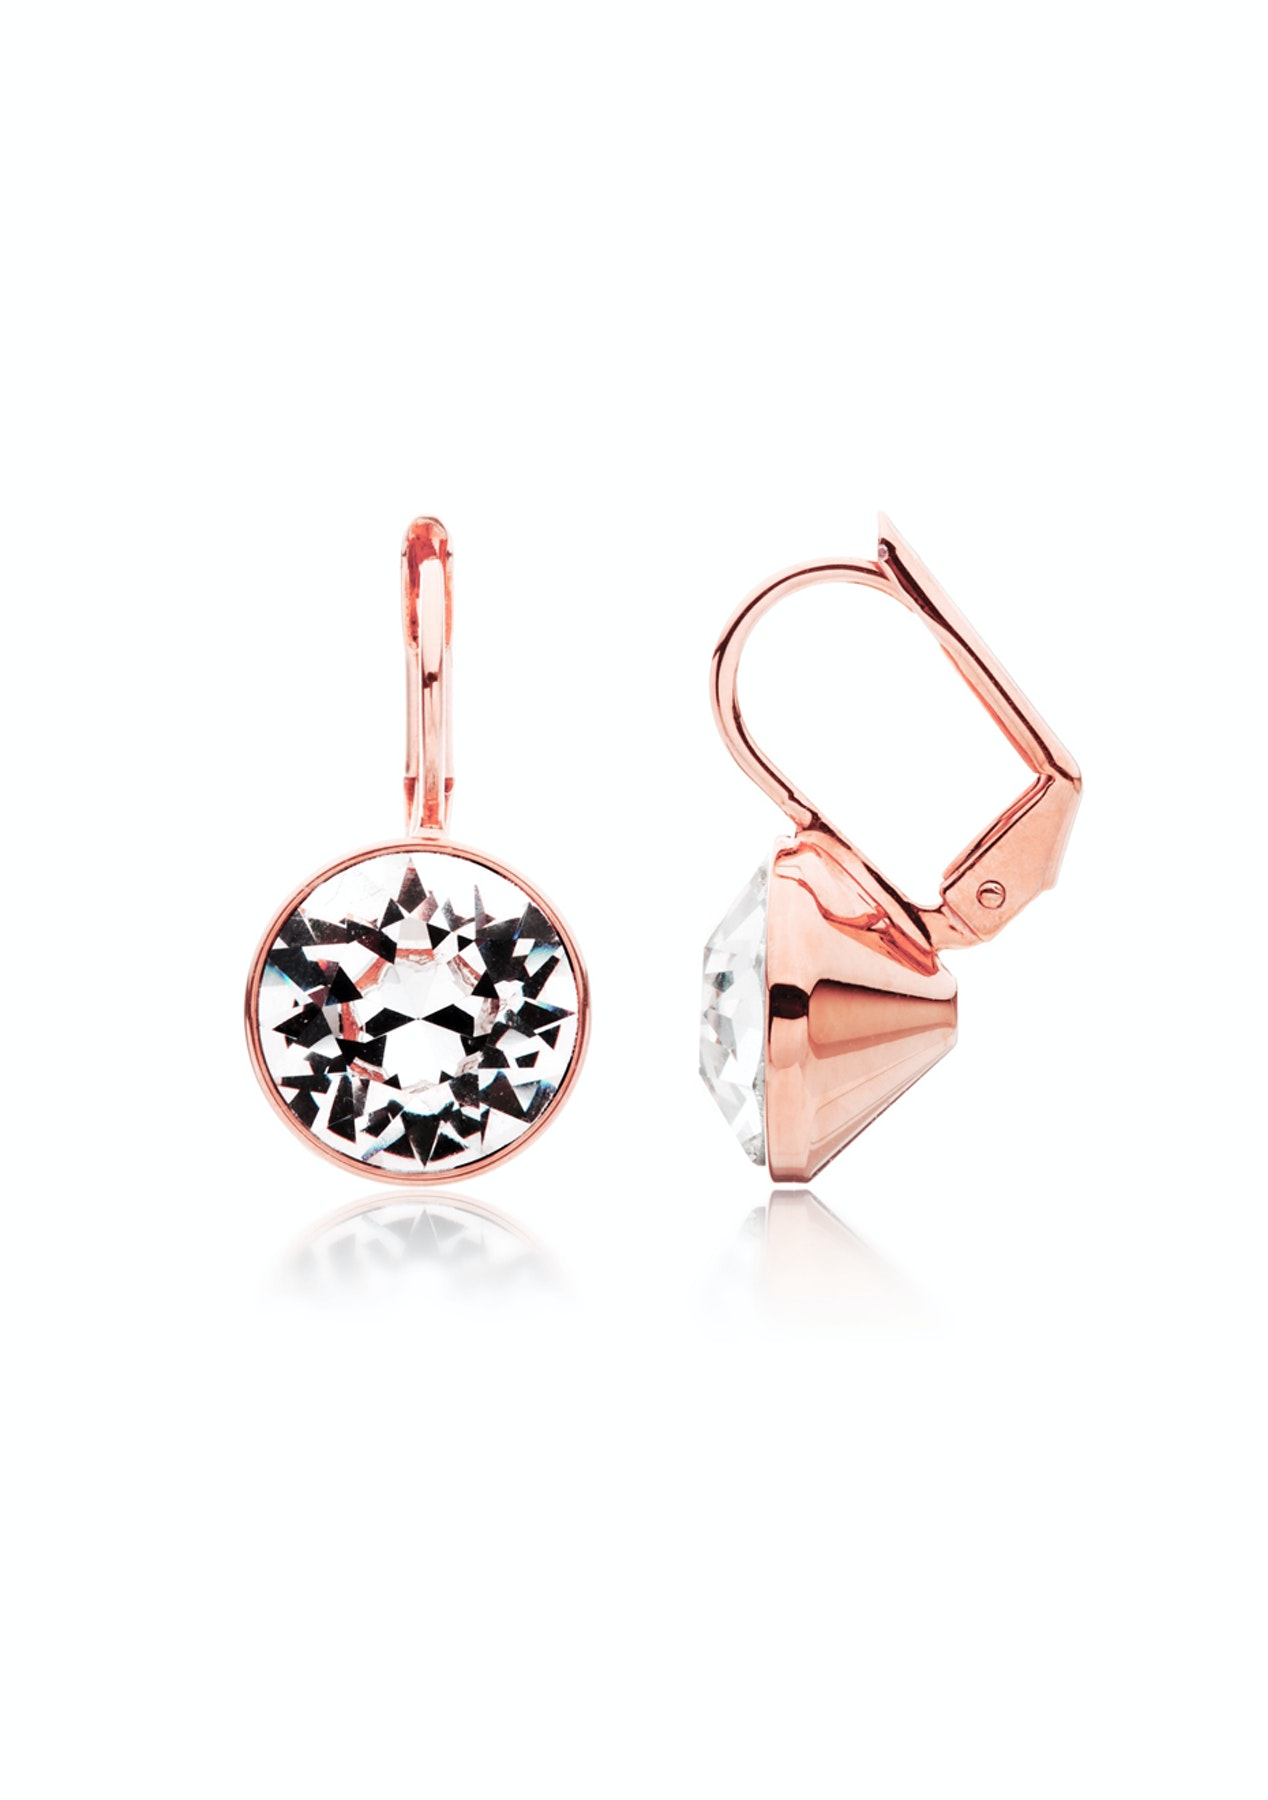 Drop Earrings Rose Gold plated Embellished with Crystals from Swarovski